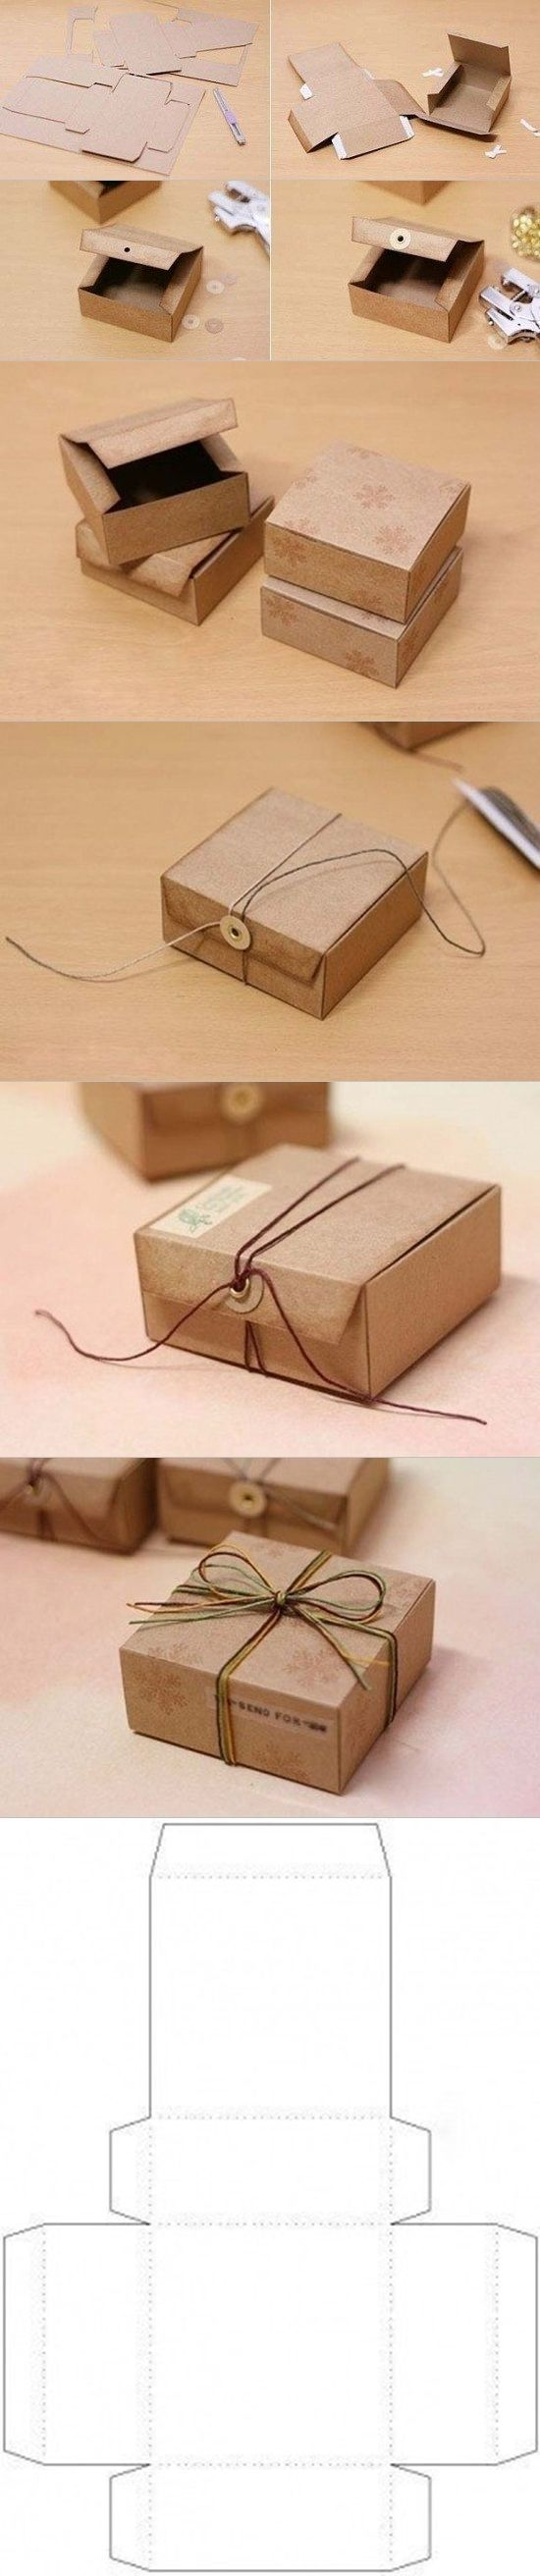 Gift box from cardboard tutorial